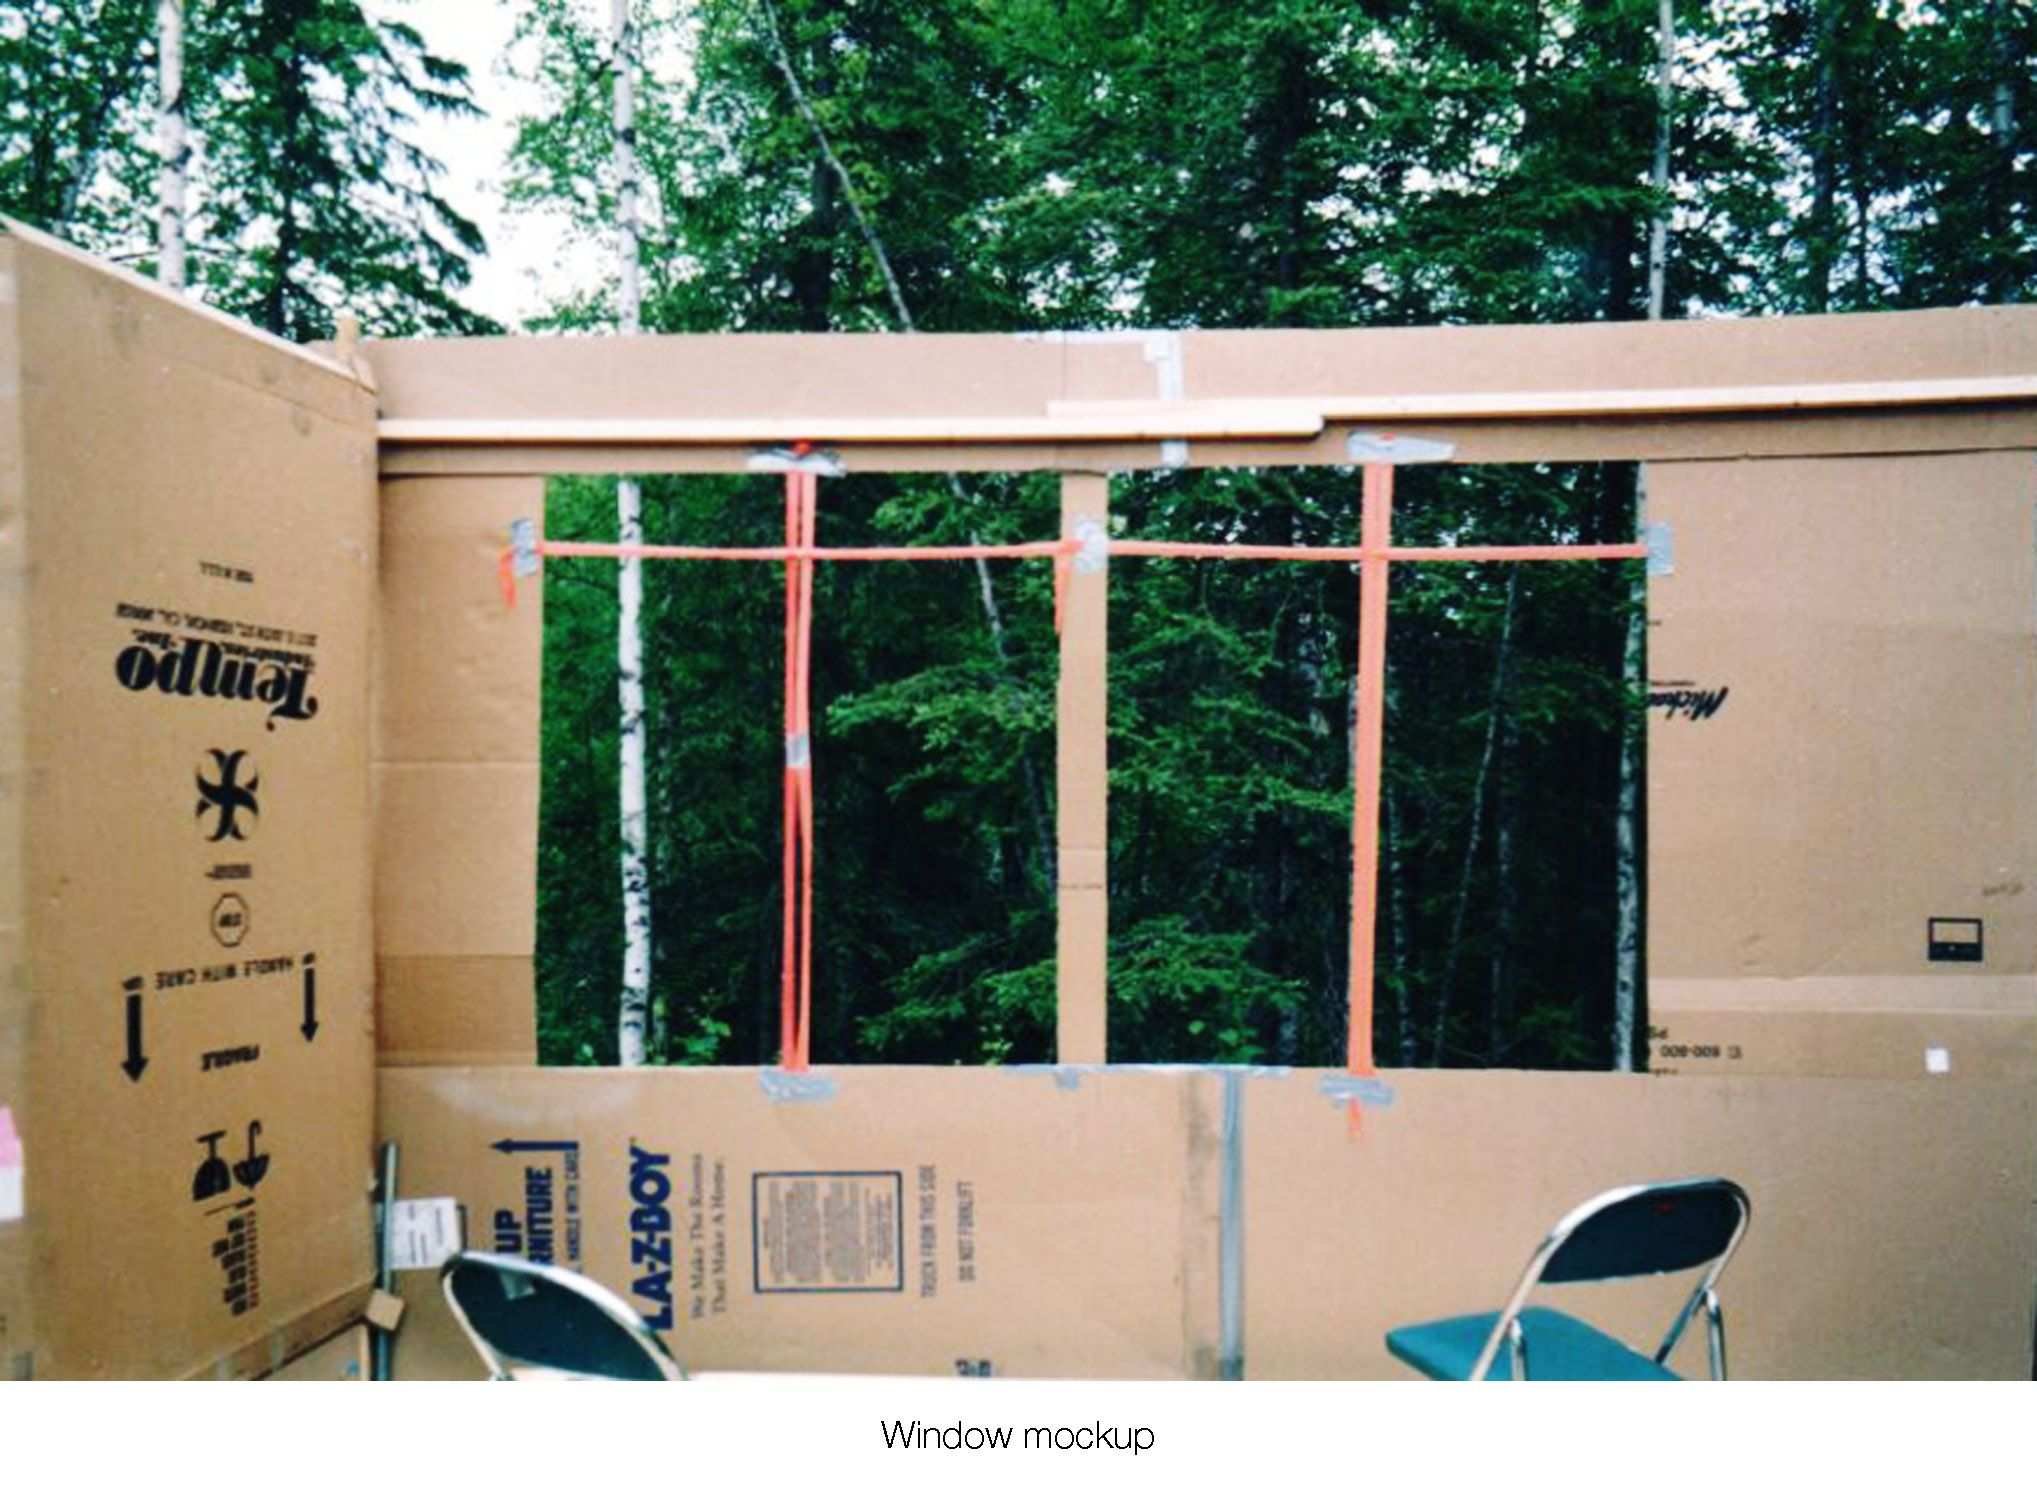 House on the meadow living room on site window design mock-up using surveyor tape and cardboard